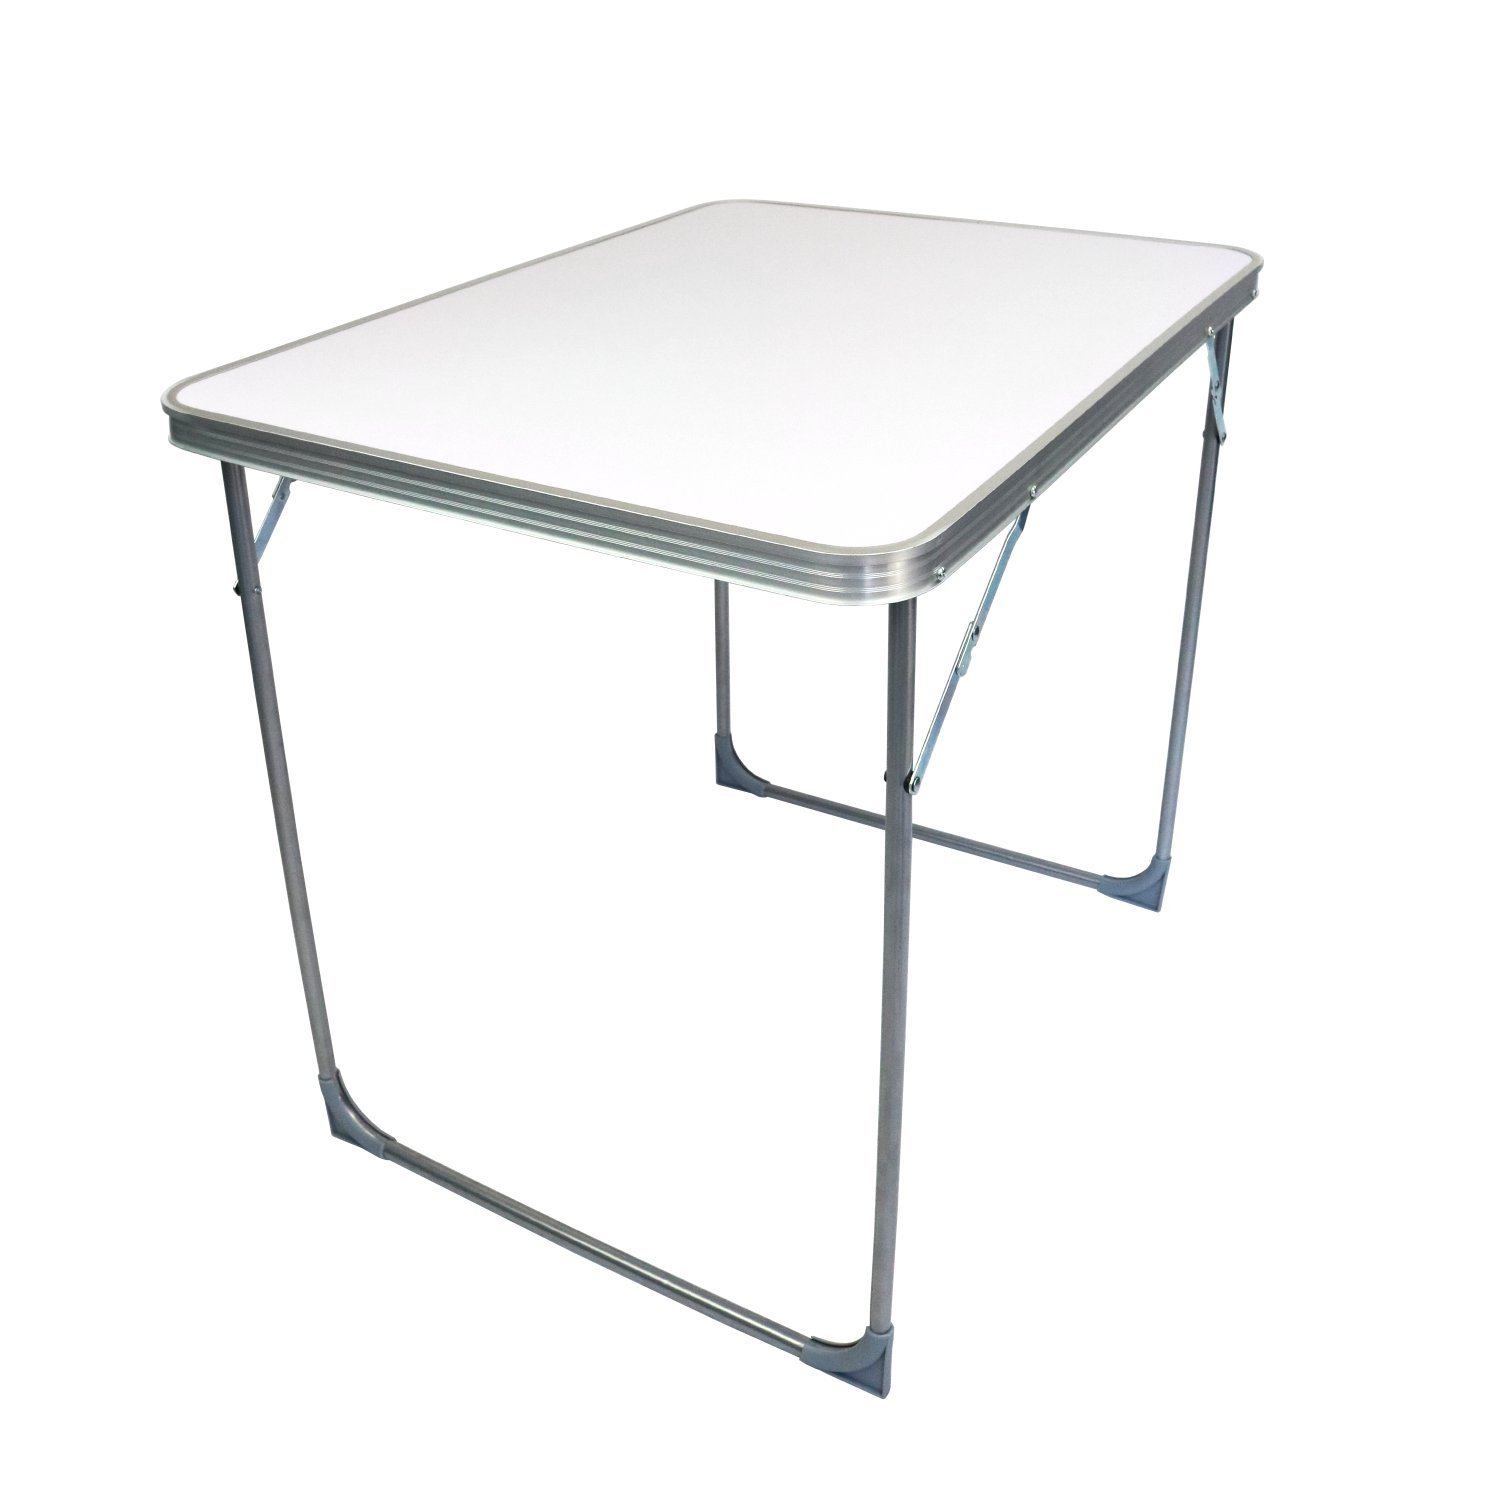 Camping Kitchen Table: 80cm Portable Folding Outdoor Camping Kitchen Work Top